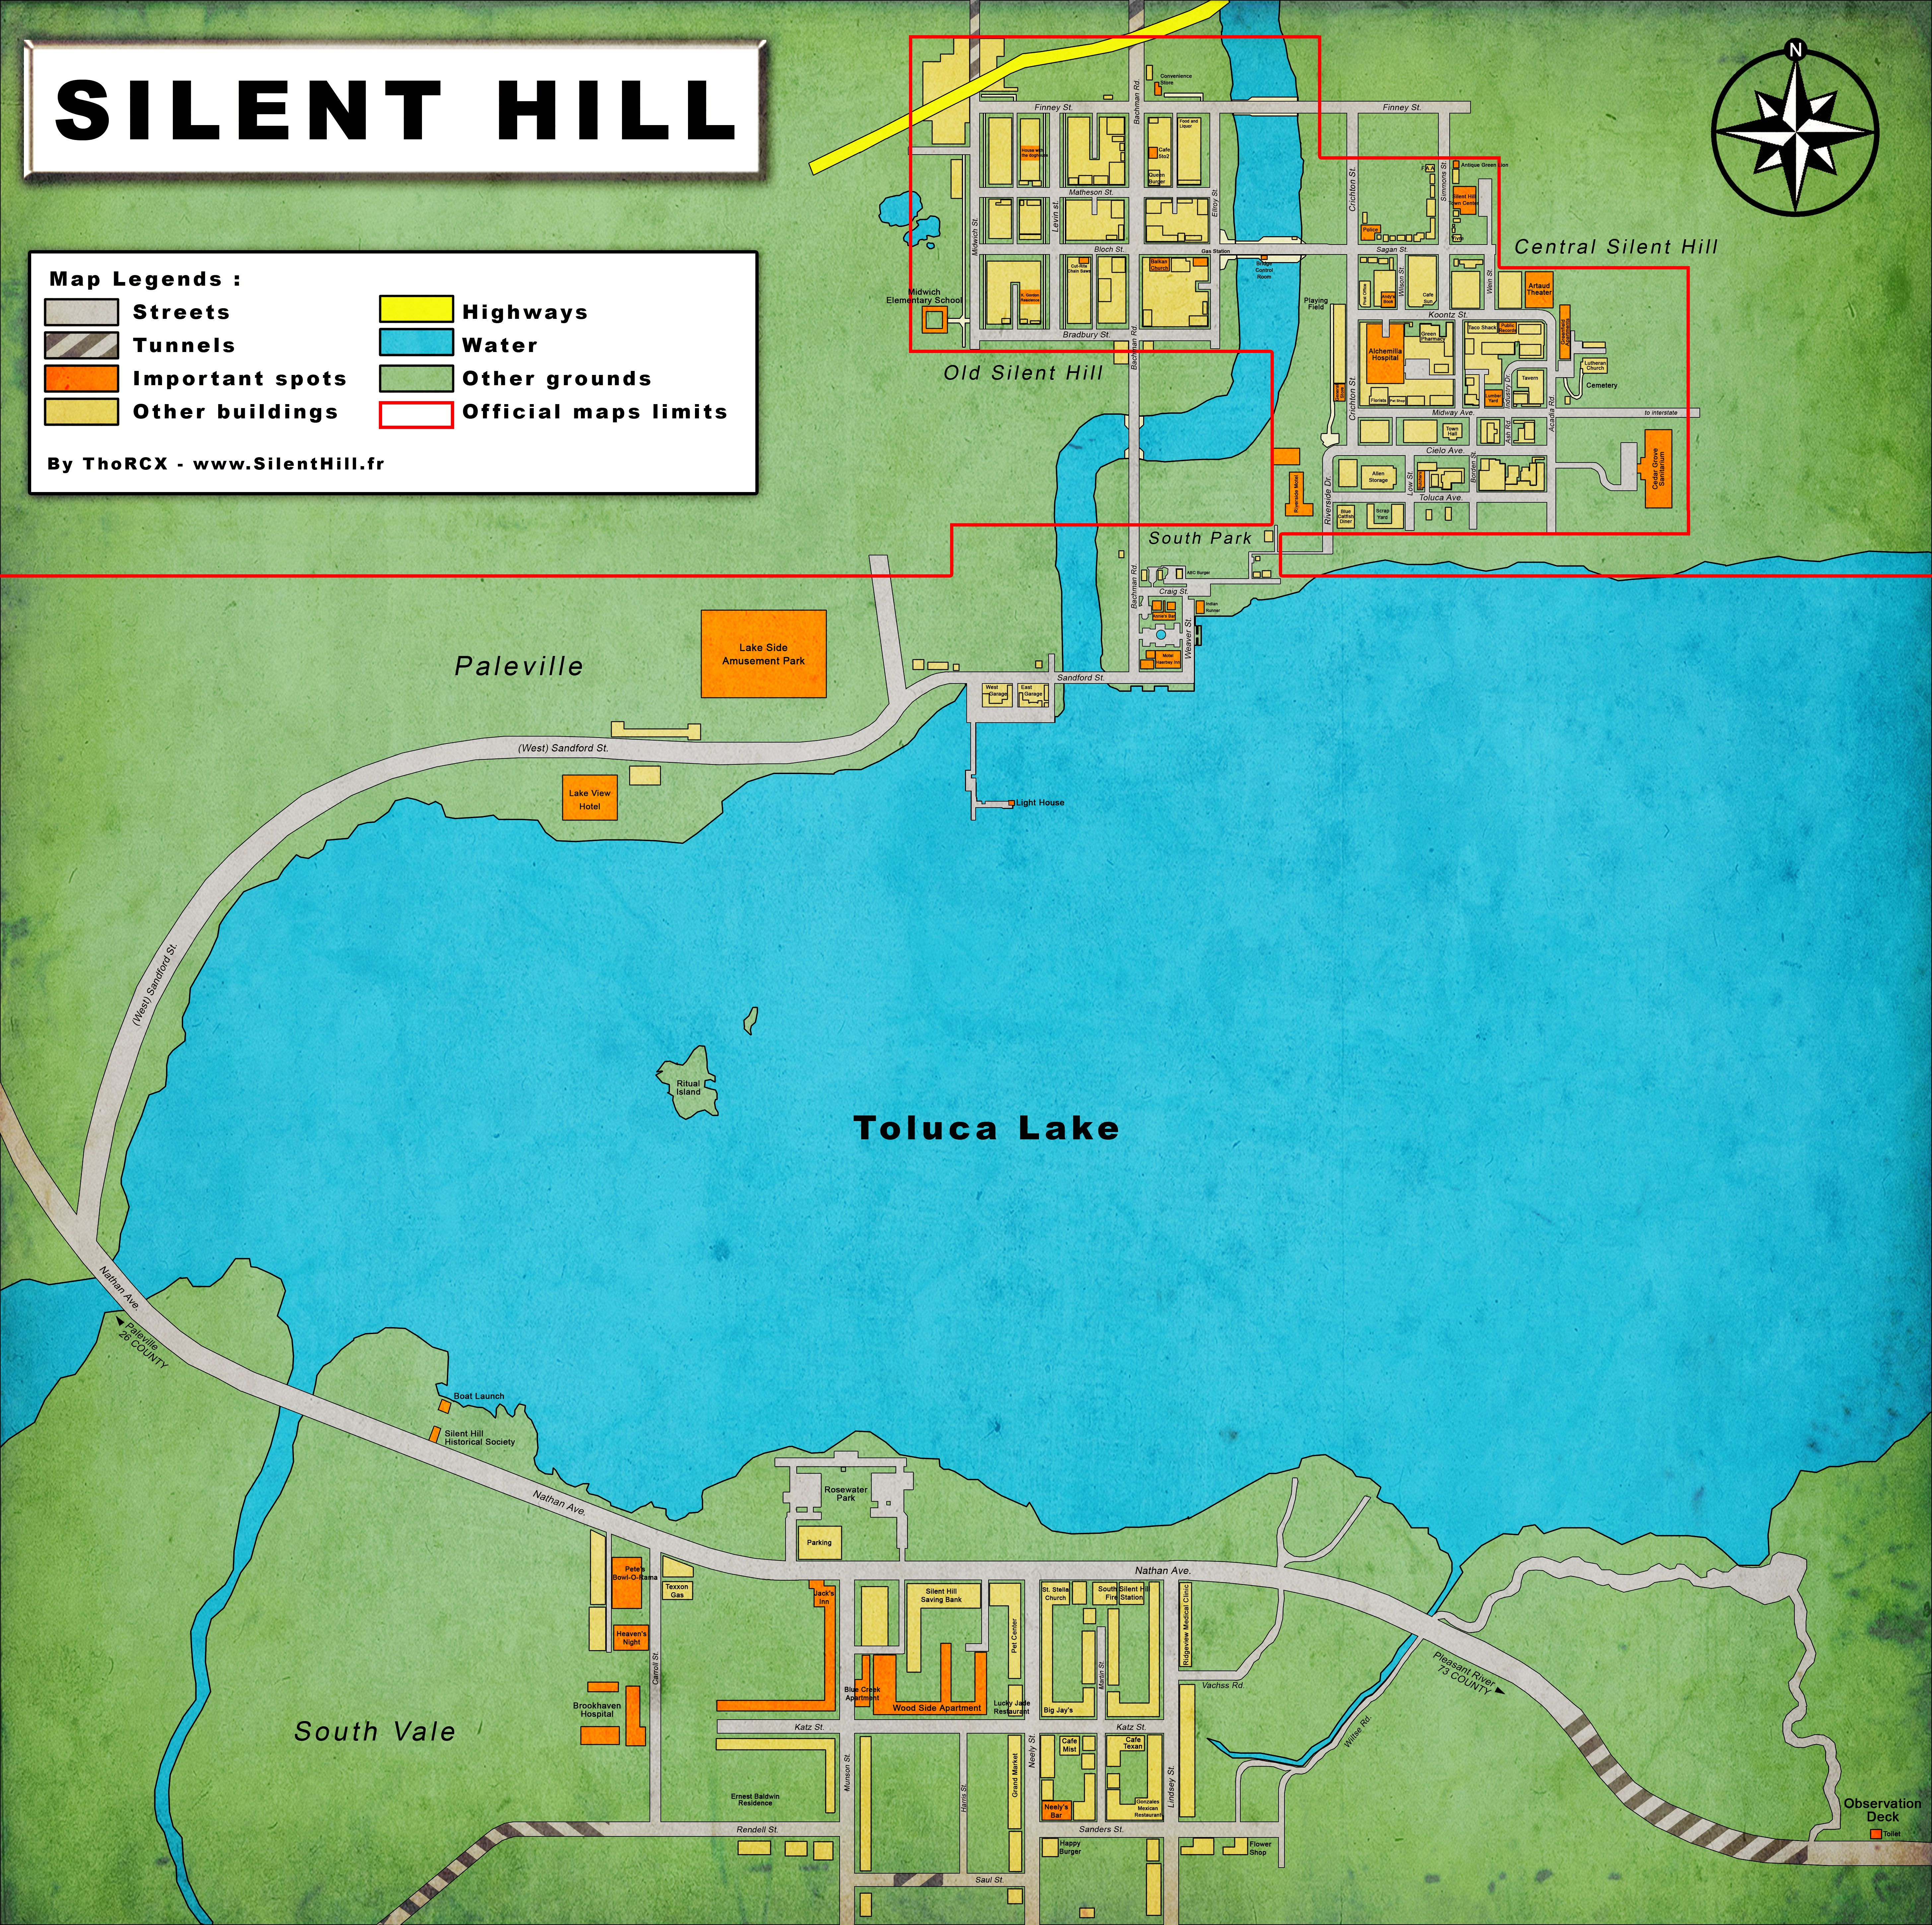 Silent Hill Town map Lol toluca lake takes up the Majority of the